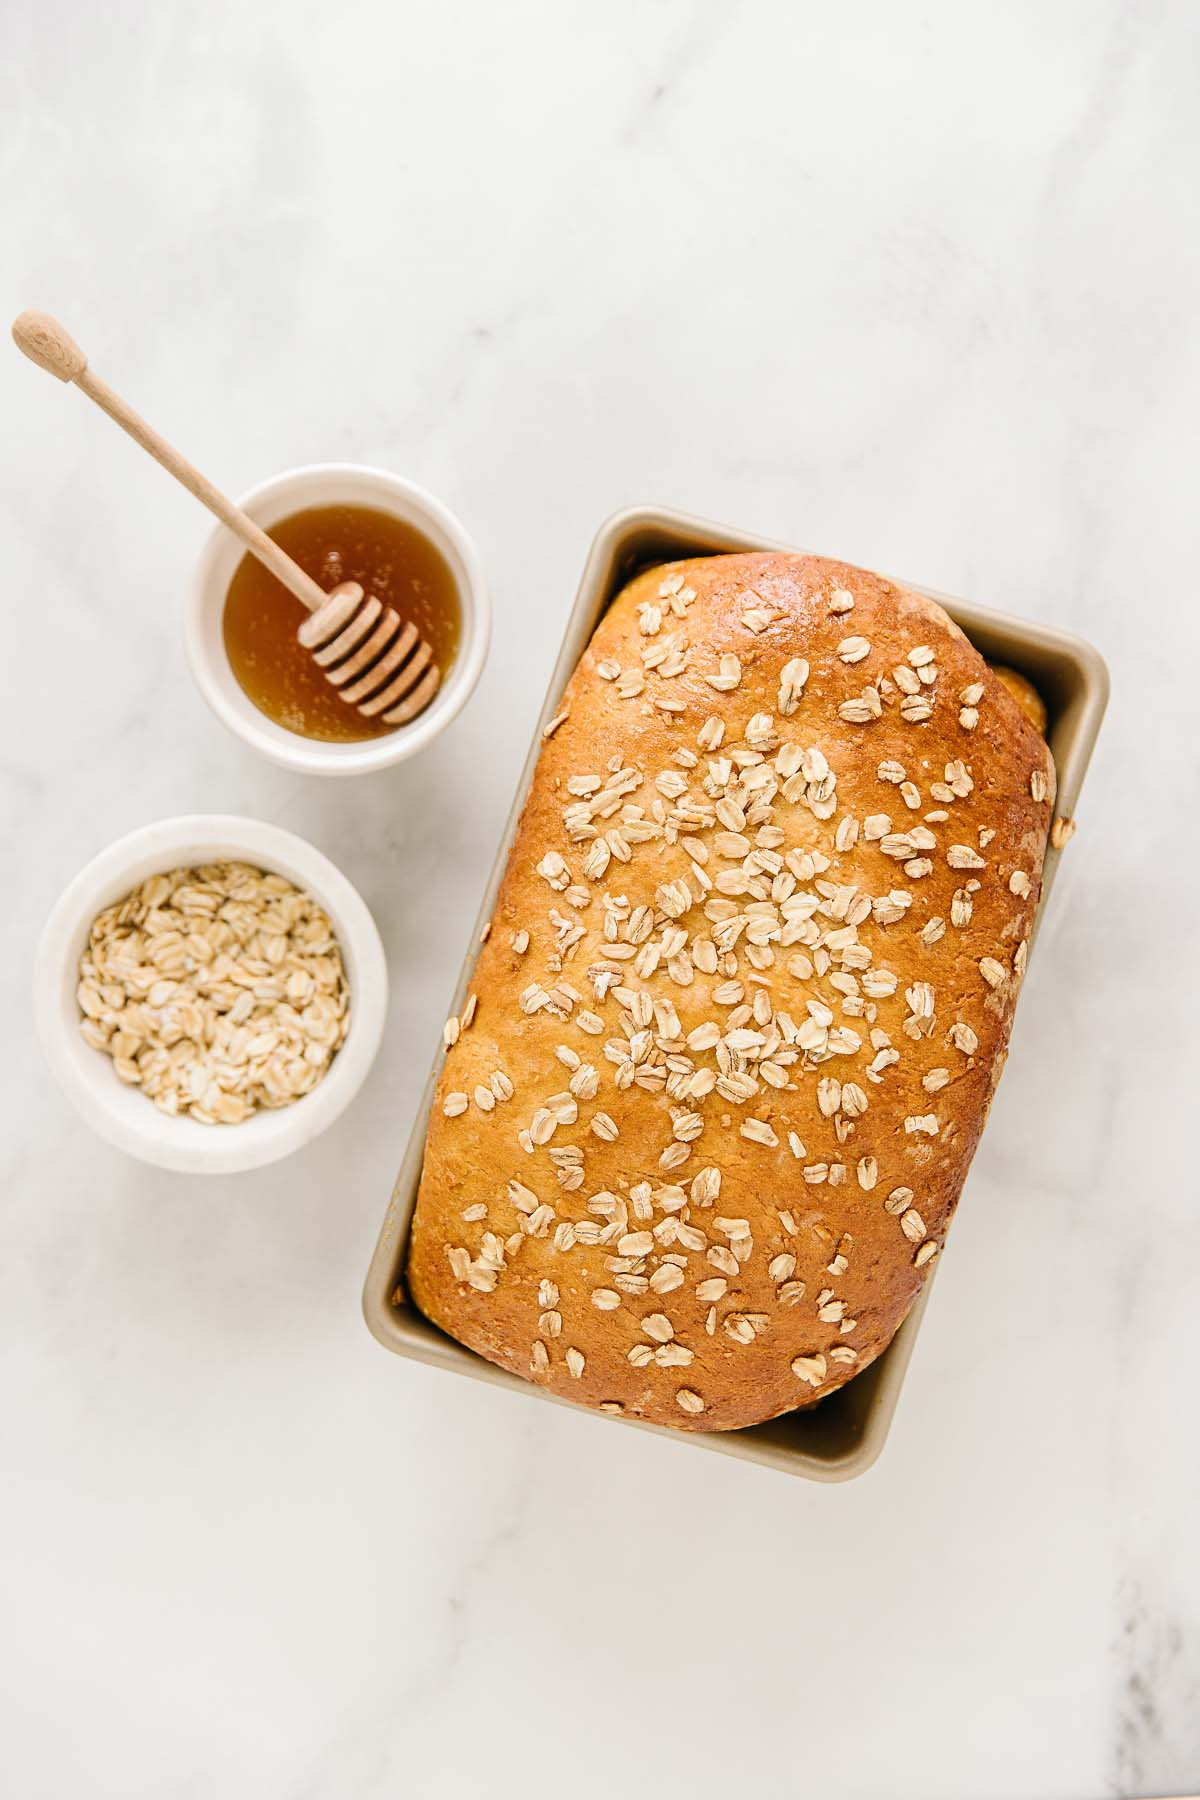 Bread with oatmeal on top in a pan with two bowls on the side filled with honey and oatmeal.